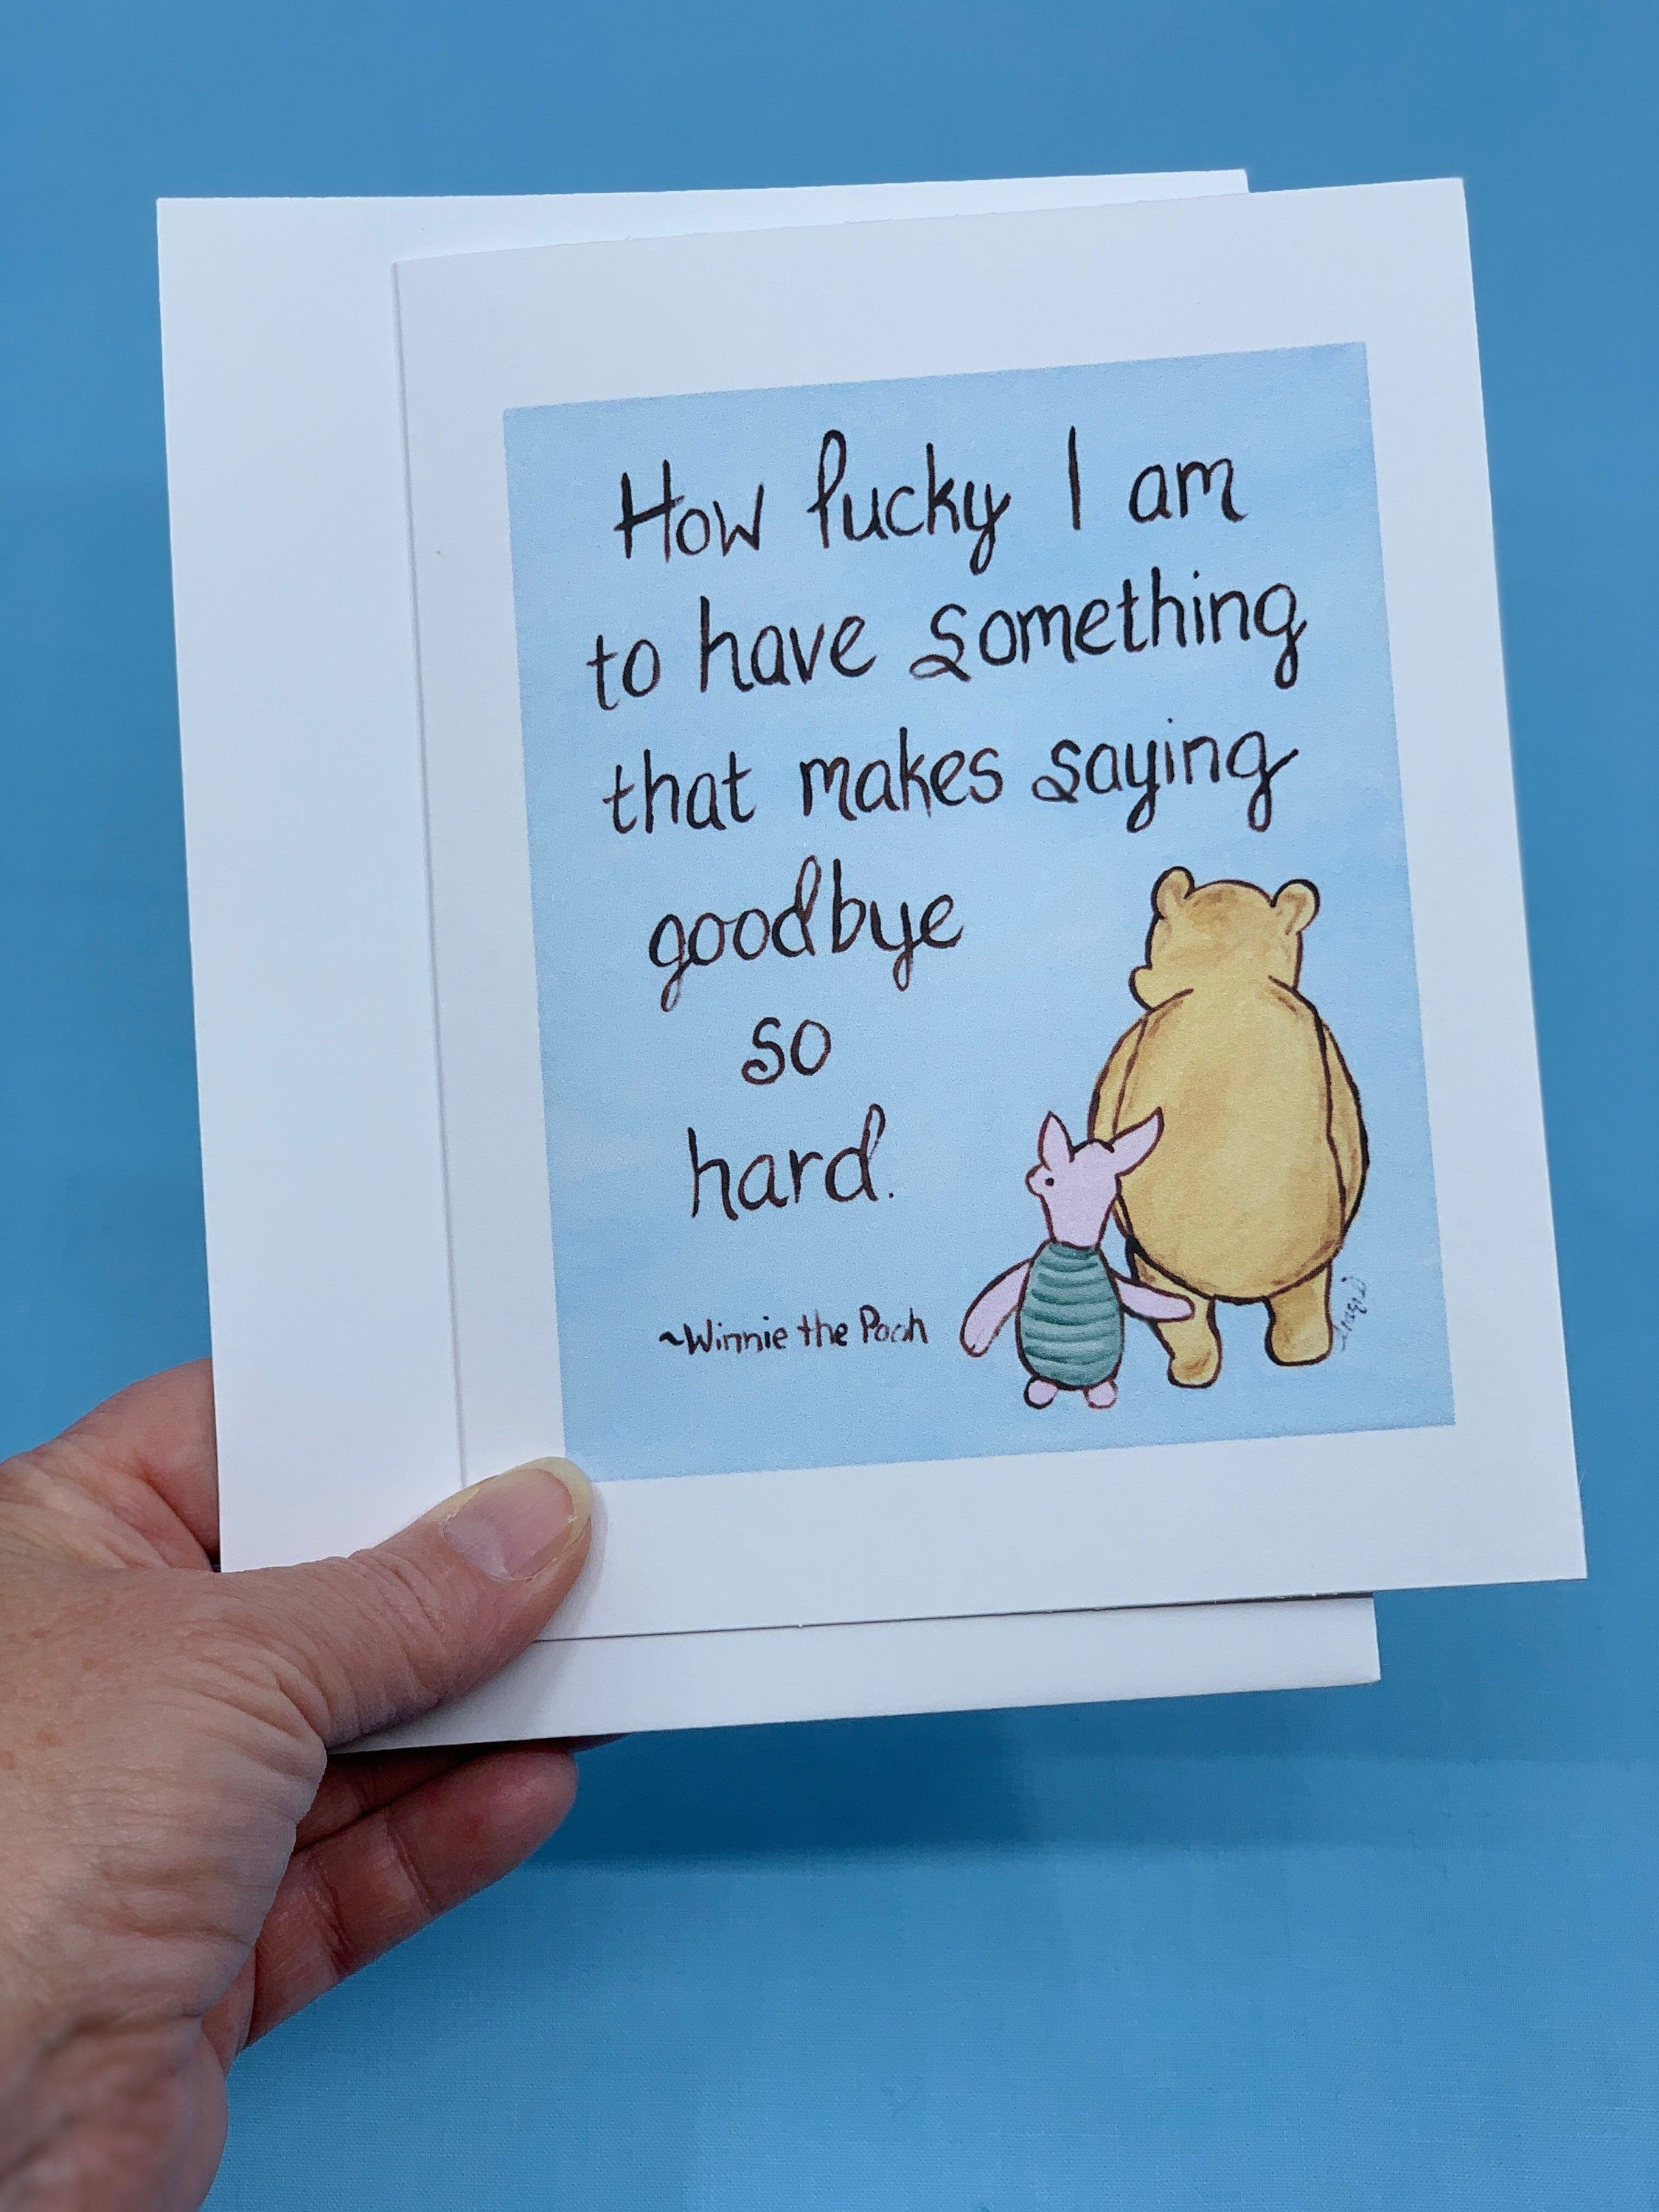 Goodbye Card Winnie The Pooh How Lucky I Am To Have Something That Makes Saying Goodbye So Hard By Moo Goodbye Quotes For Coworkers How Lucky Am I Quote Cards